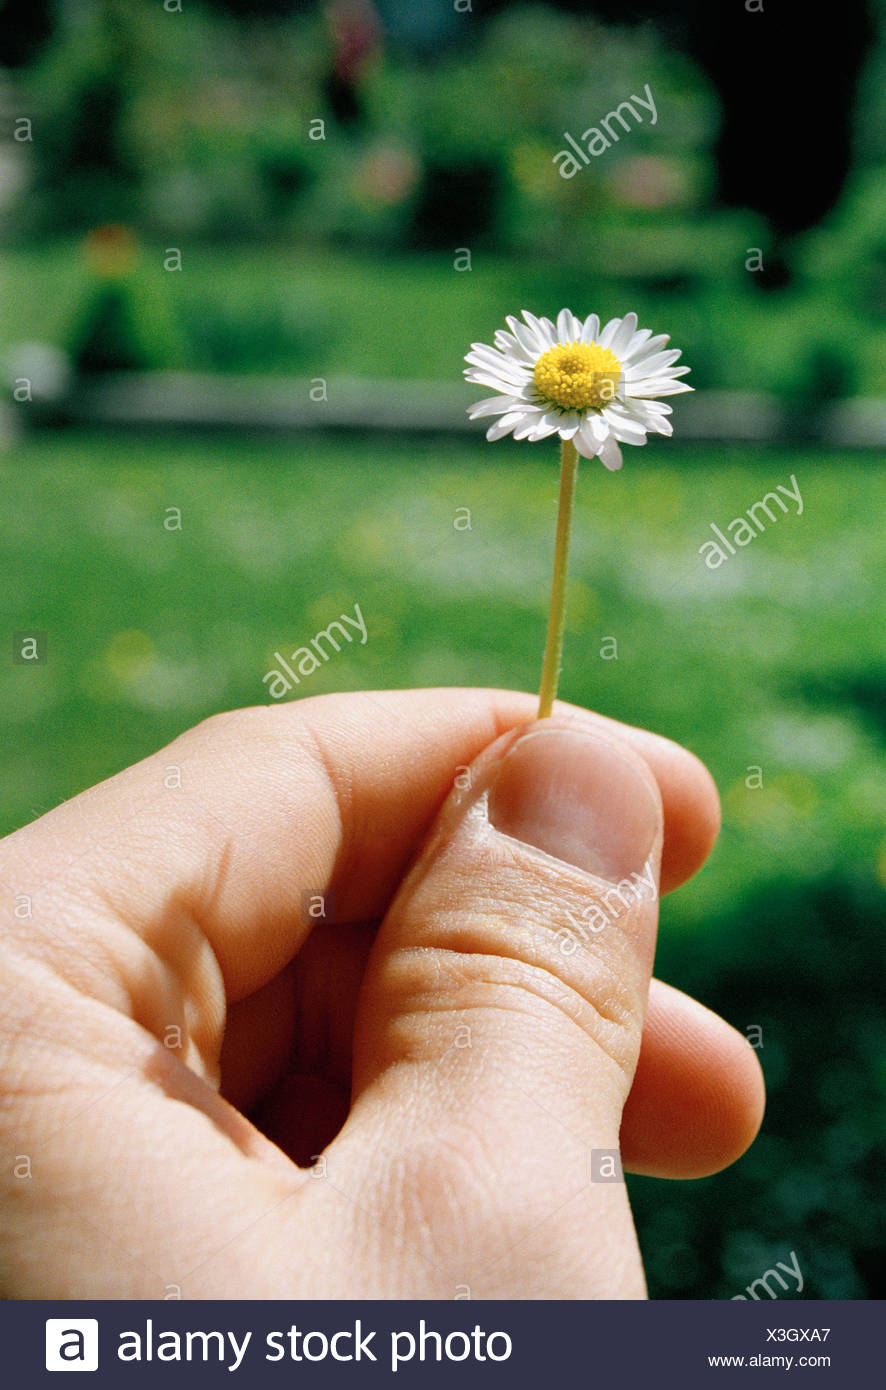 Detail of a man holding a small daisy - Stock Image